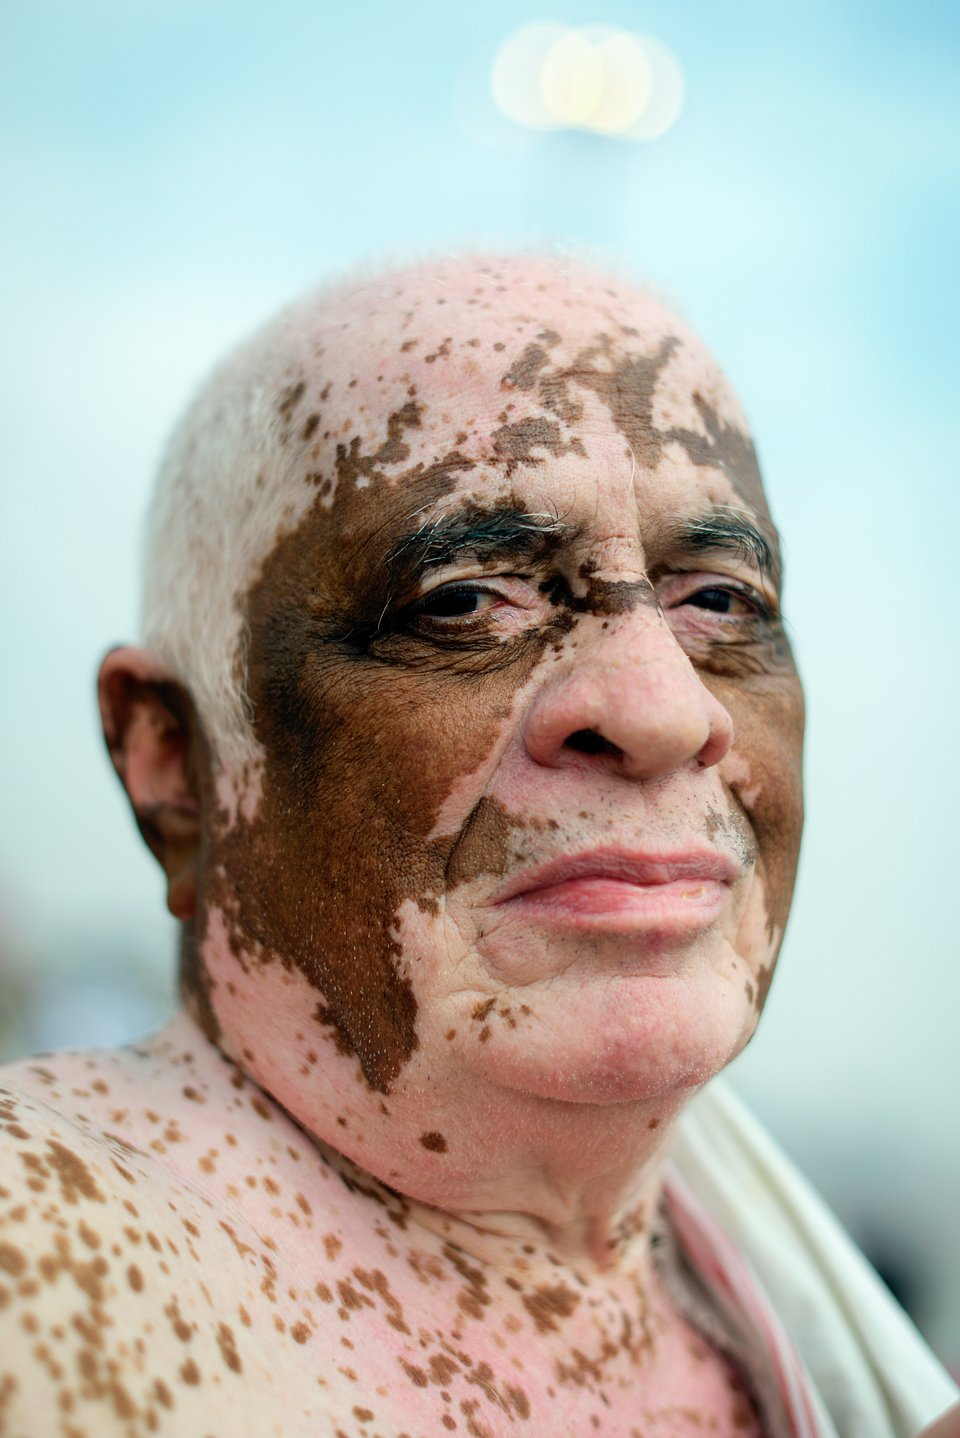 The man in this photo was born with Vitiligo, a disorder in which white patches appear on different parts of the body. These patterns usually develop symmetrically across bodies and faces. This photo is one in a series called Vitiligo. (Agora)